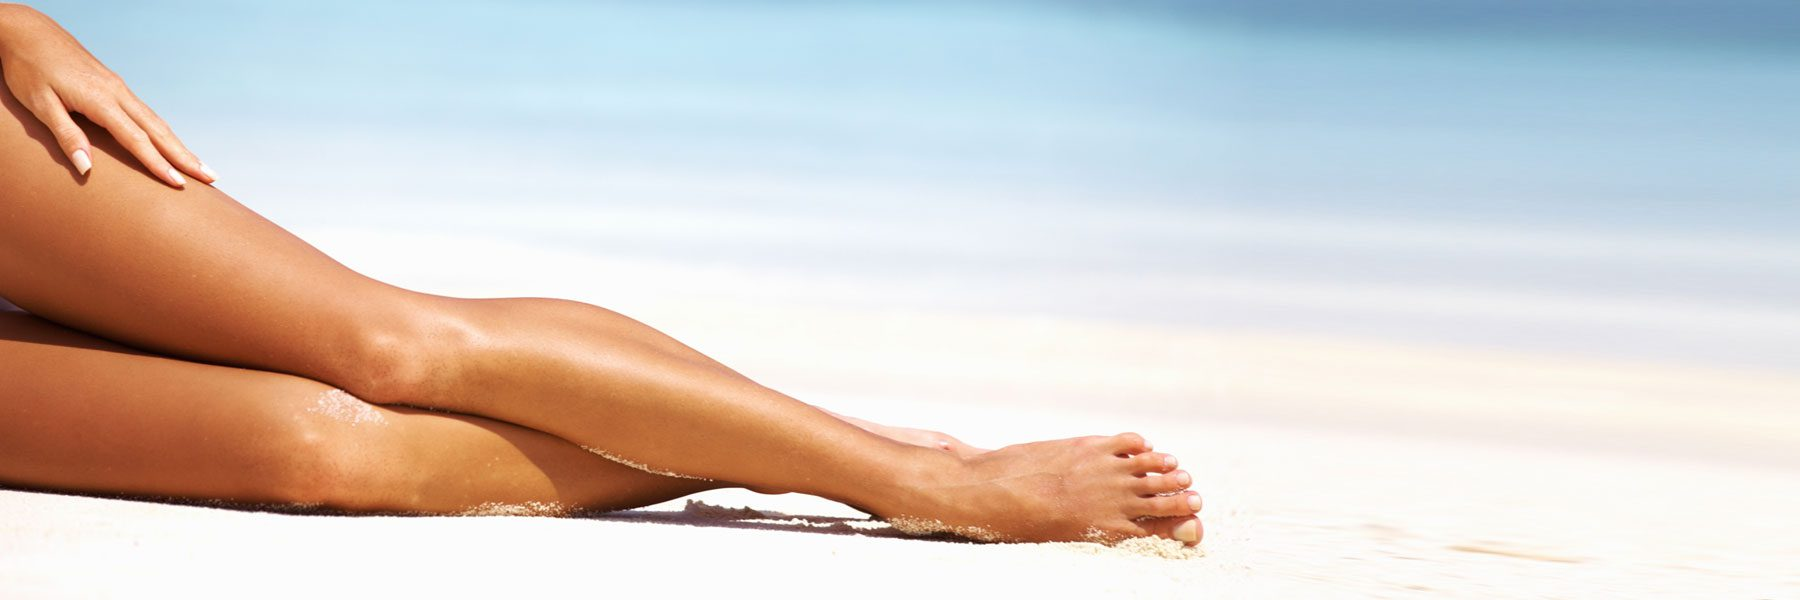 cosmetic veins clinic treatments